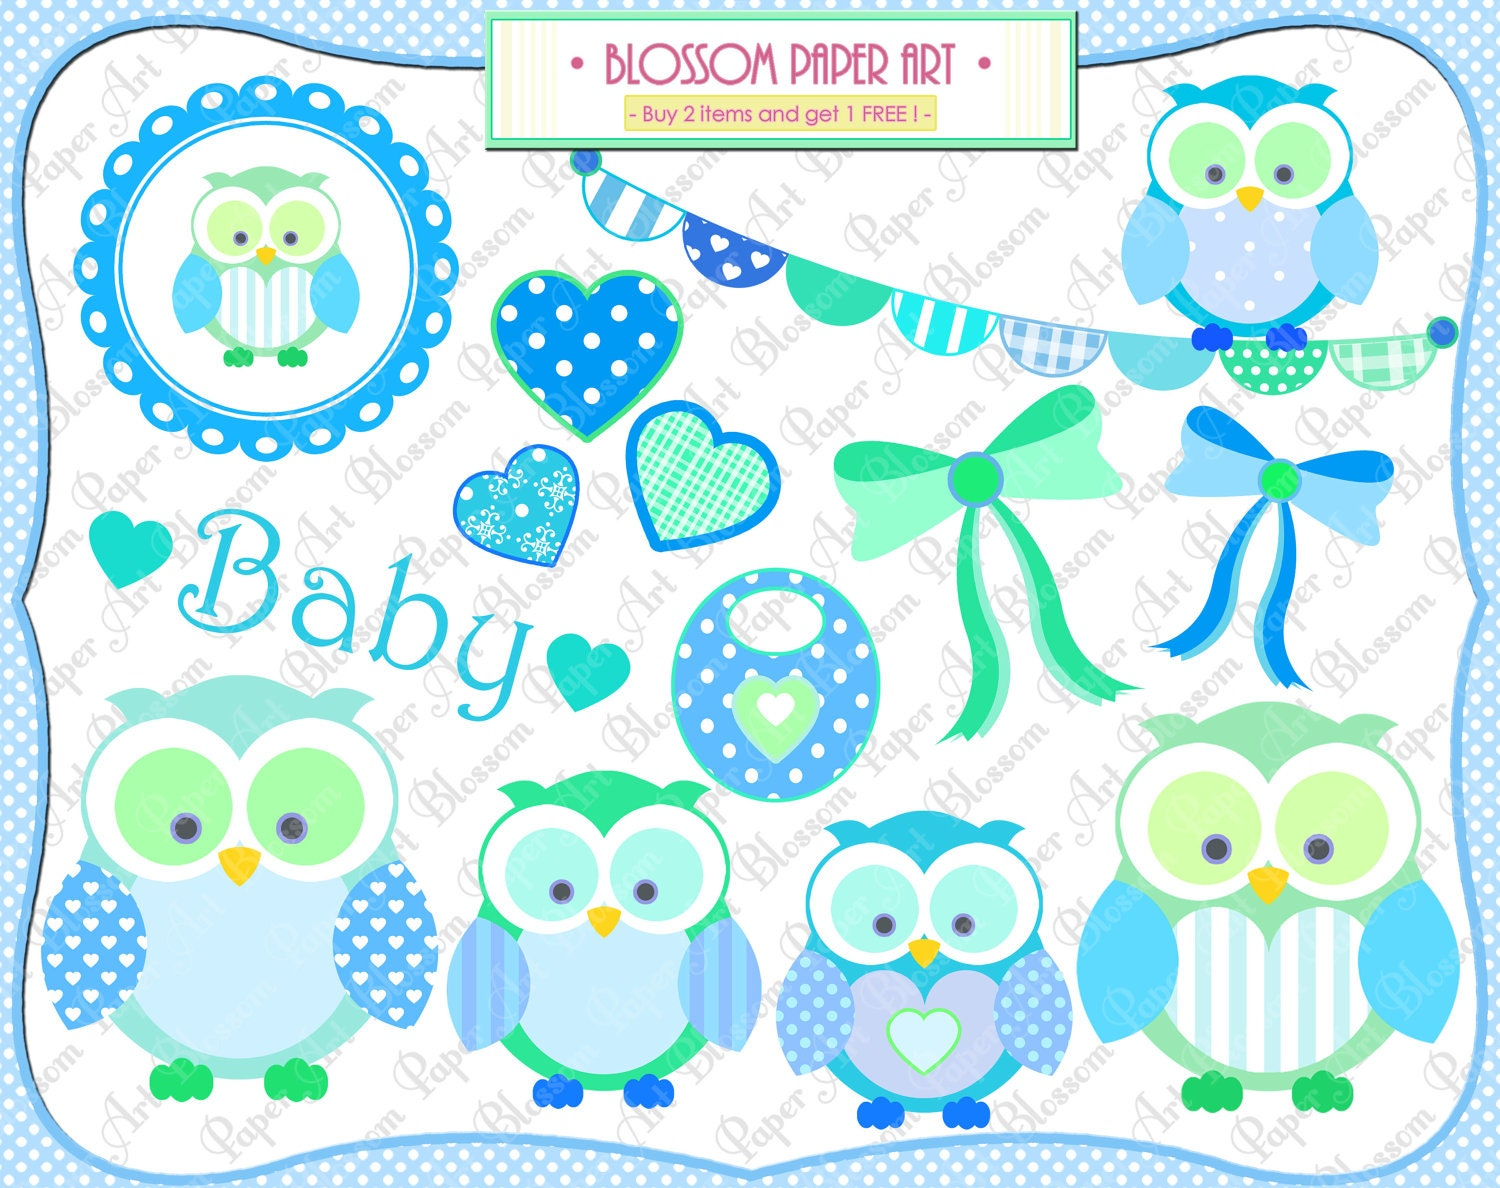 free clipart baby shower boy - photo #43